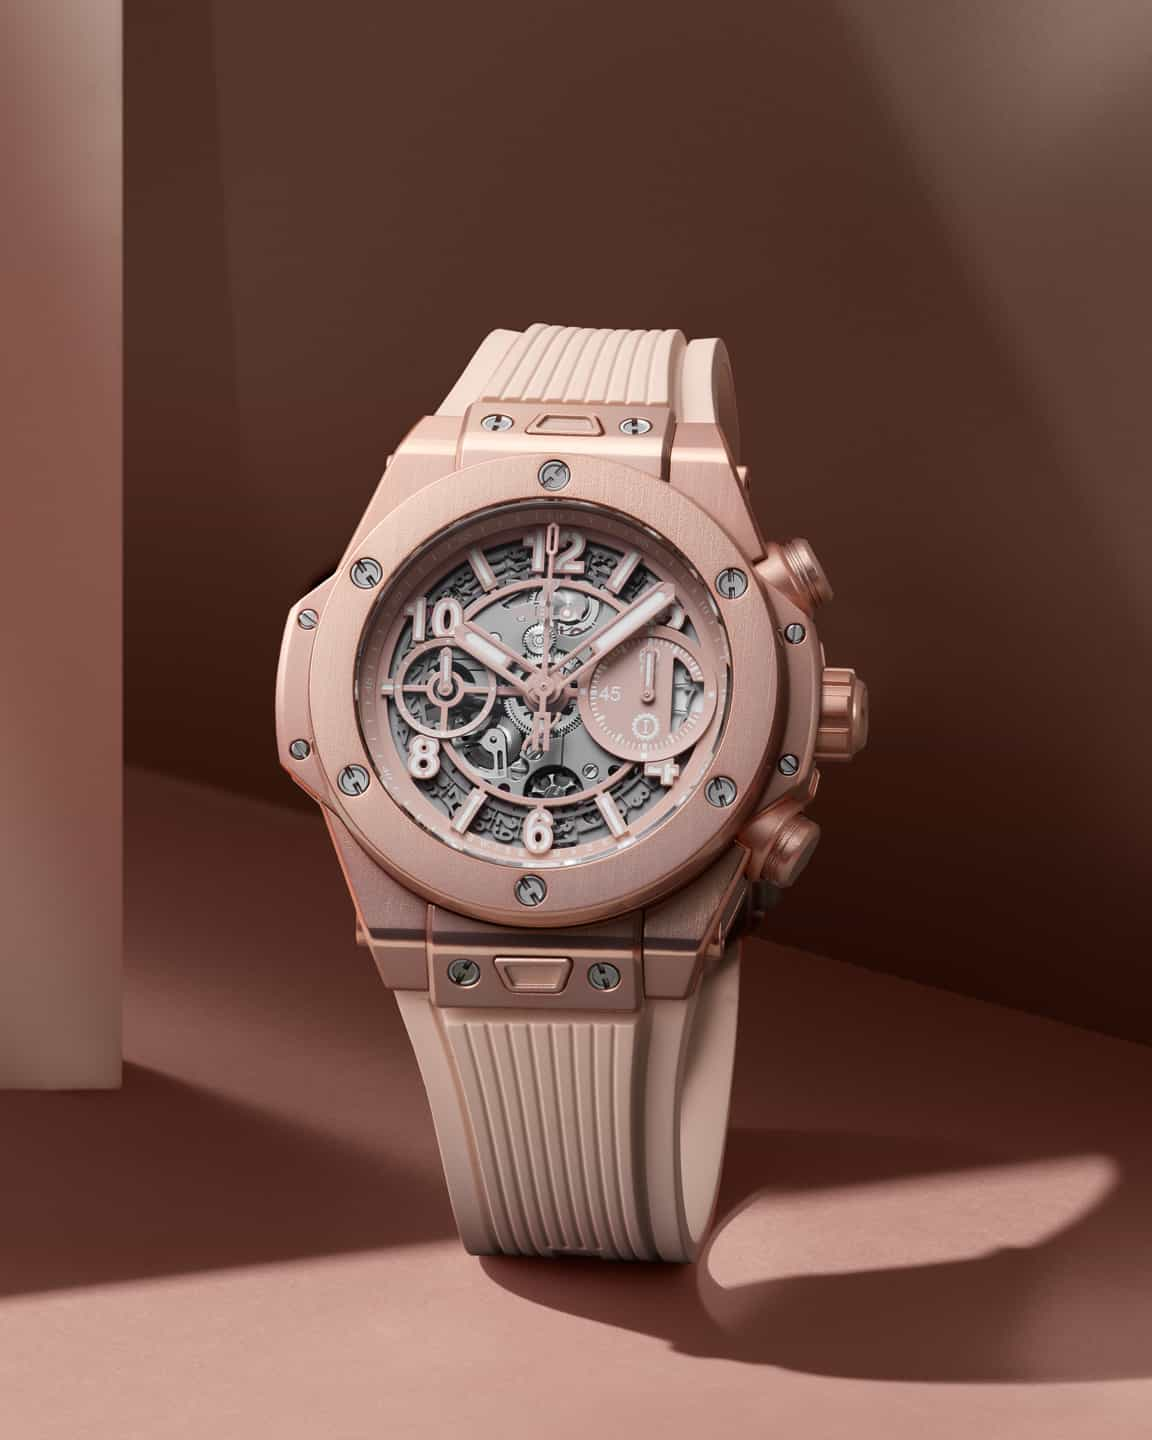 Hublot Big Bang Millennial Pink 3